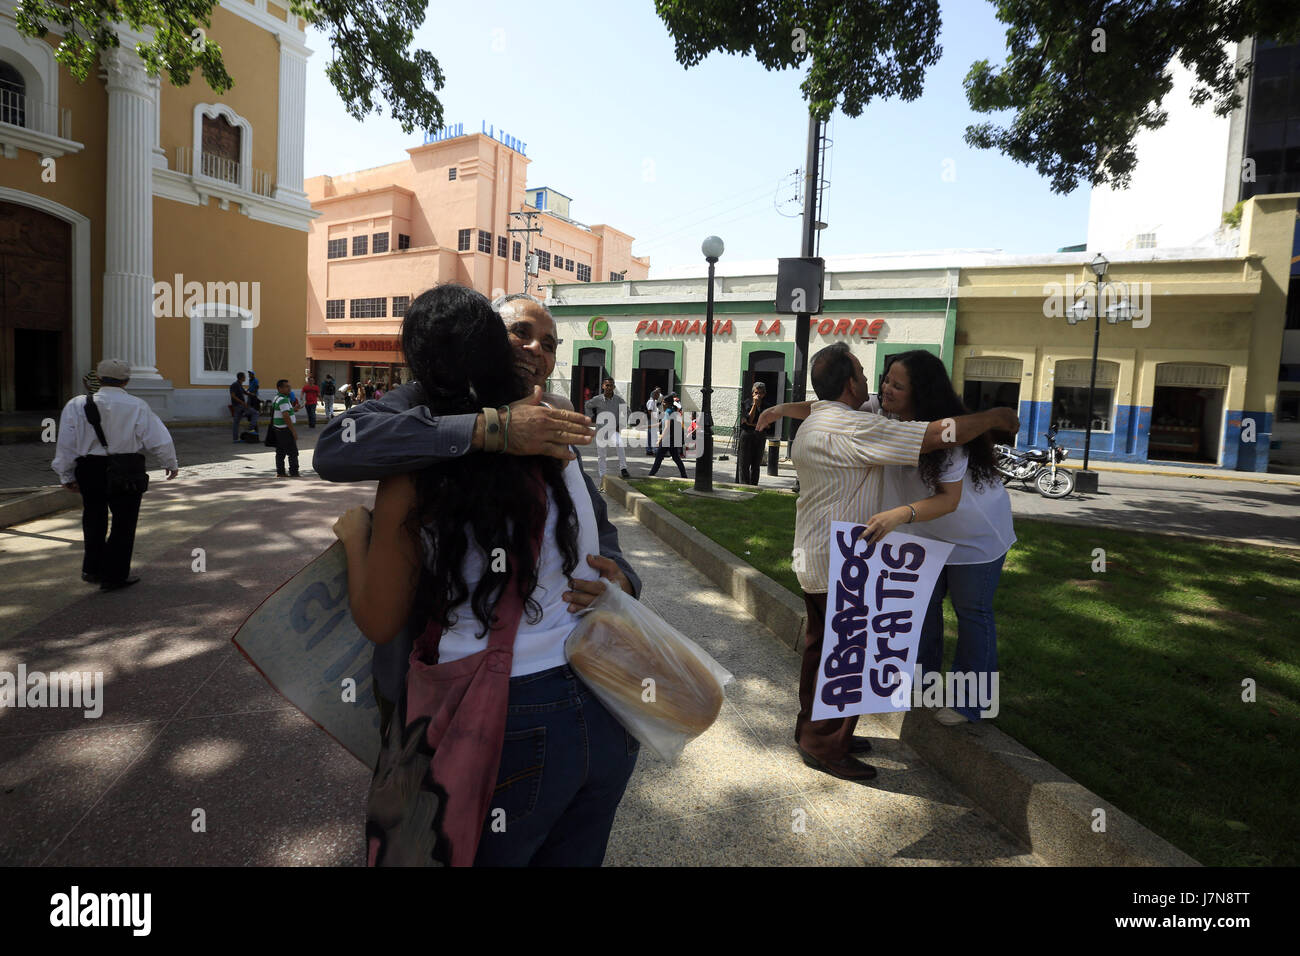 Valencia, Carabobo, Venezuela. 25th May, 2017. A group of friends started the campaign of a free hug, to face the - Stock Image